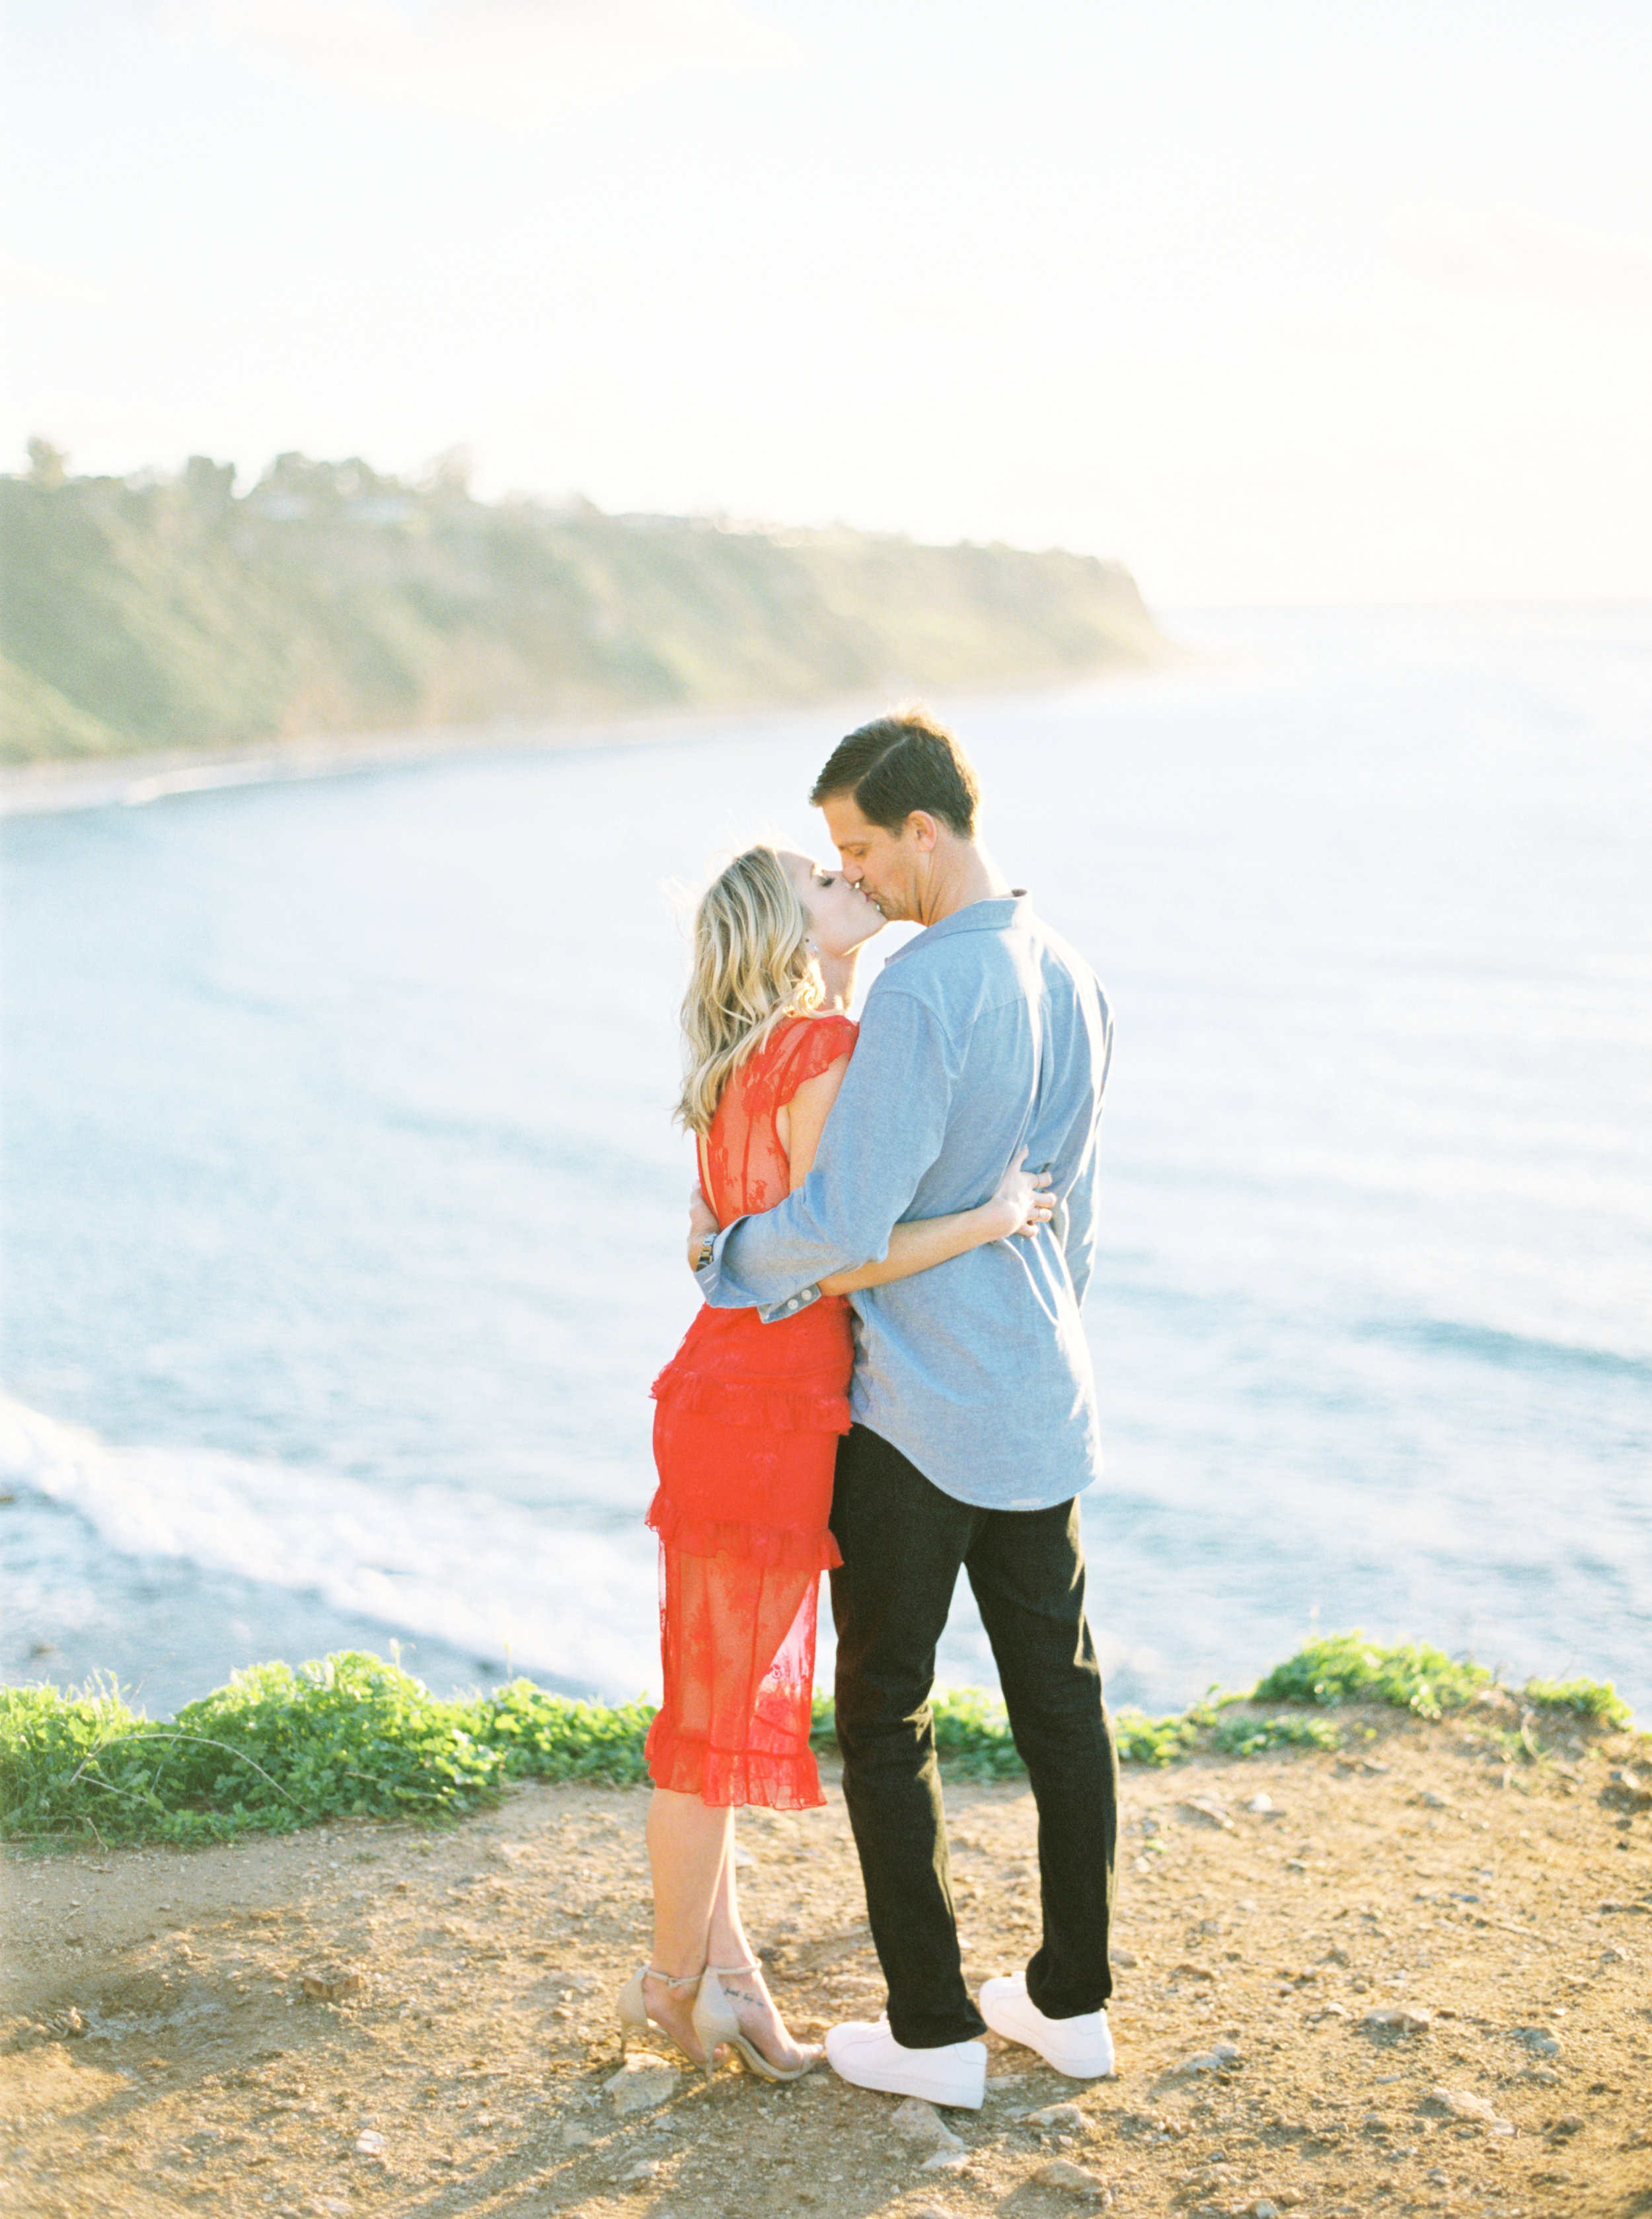 Rachel Owens Photography - Palos Verdes Beach Engagement - 9.jpg